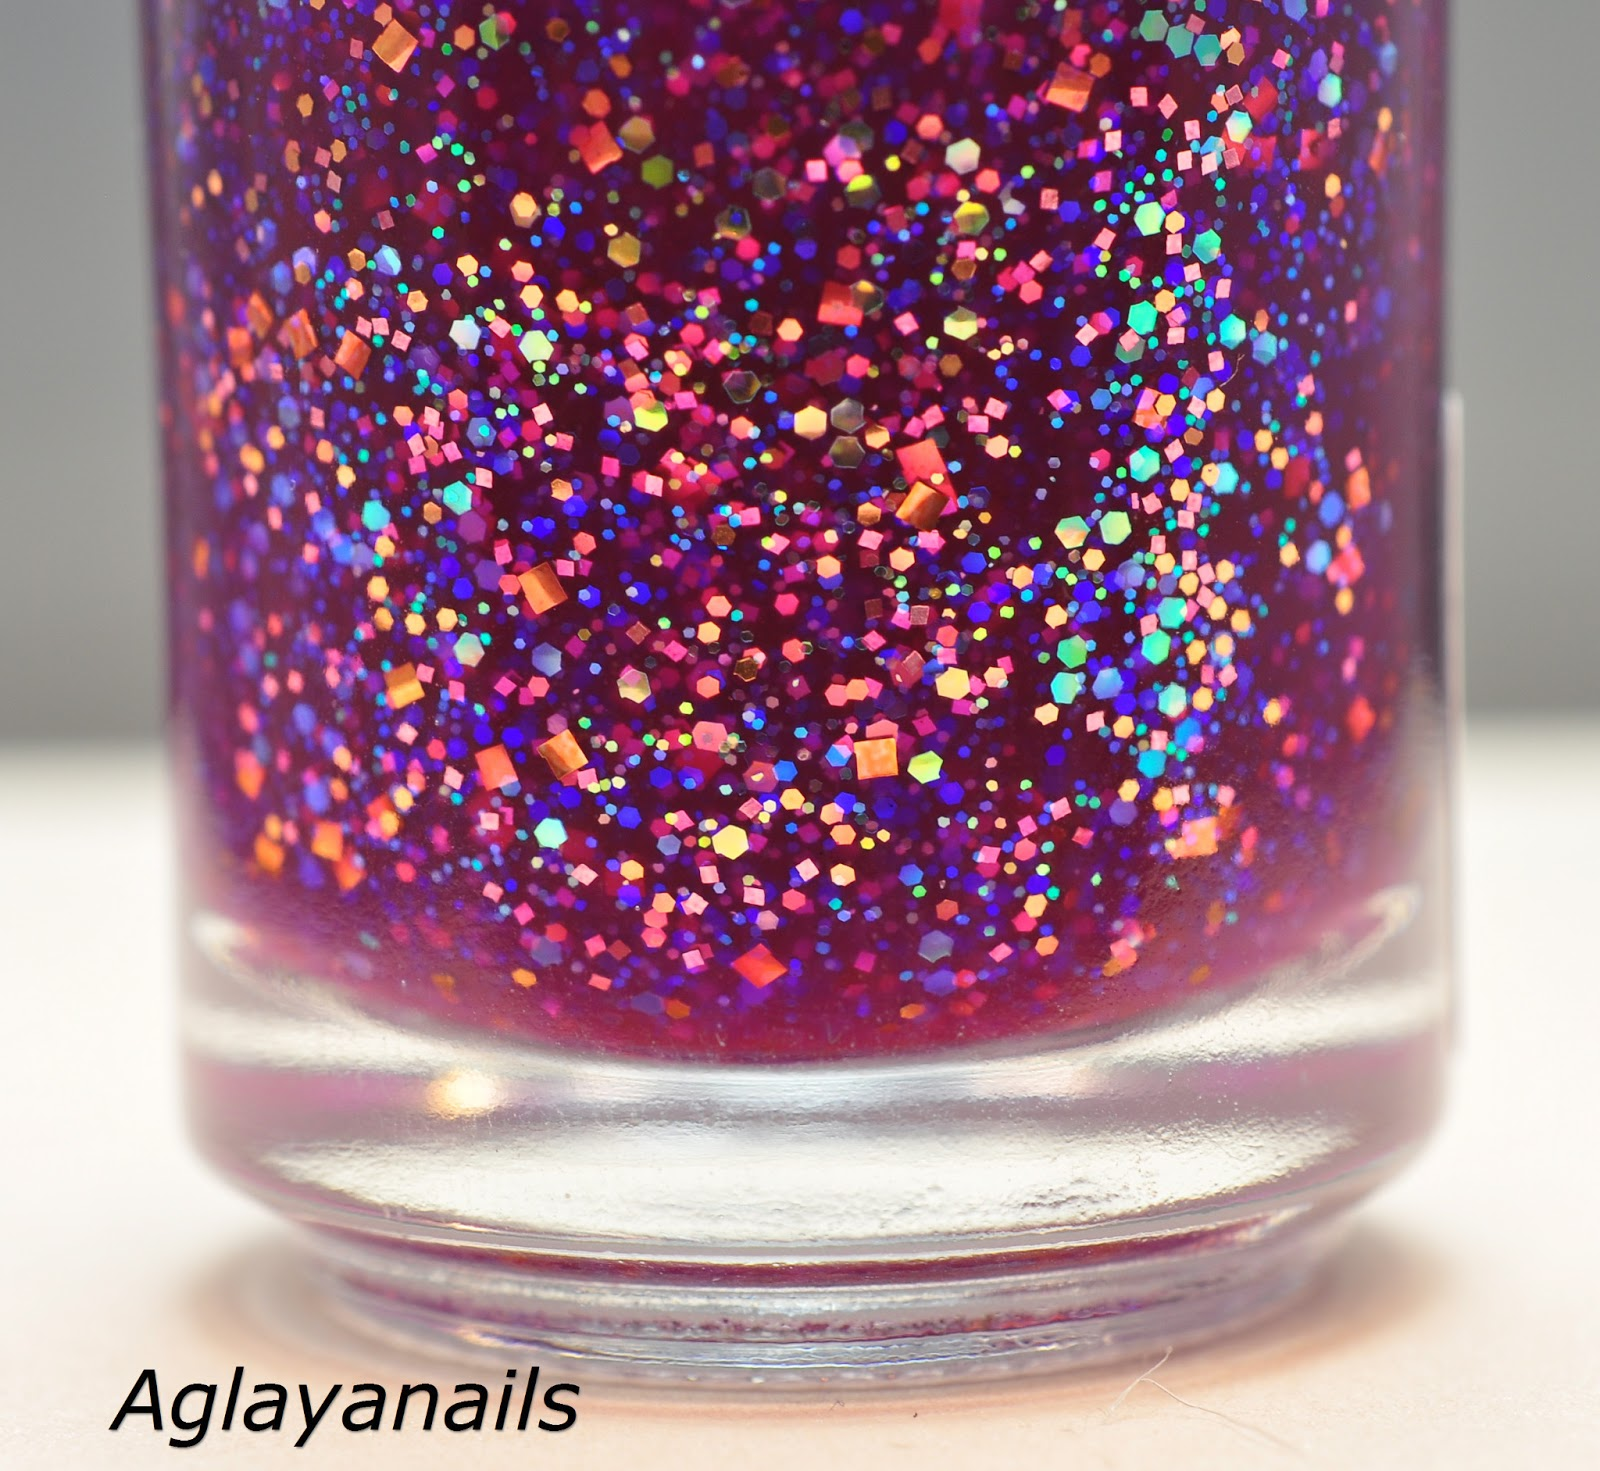 Aglayanails: Visions of Sugar Plums